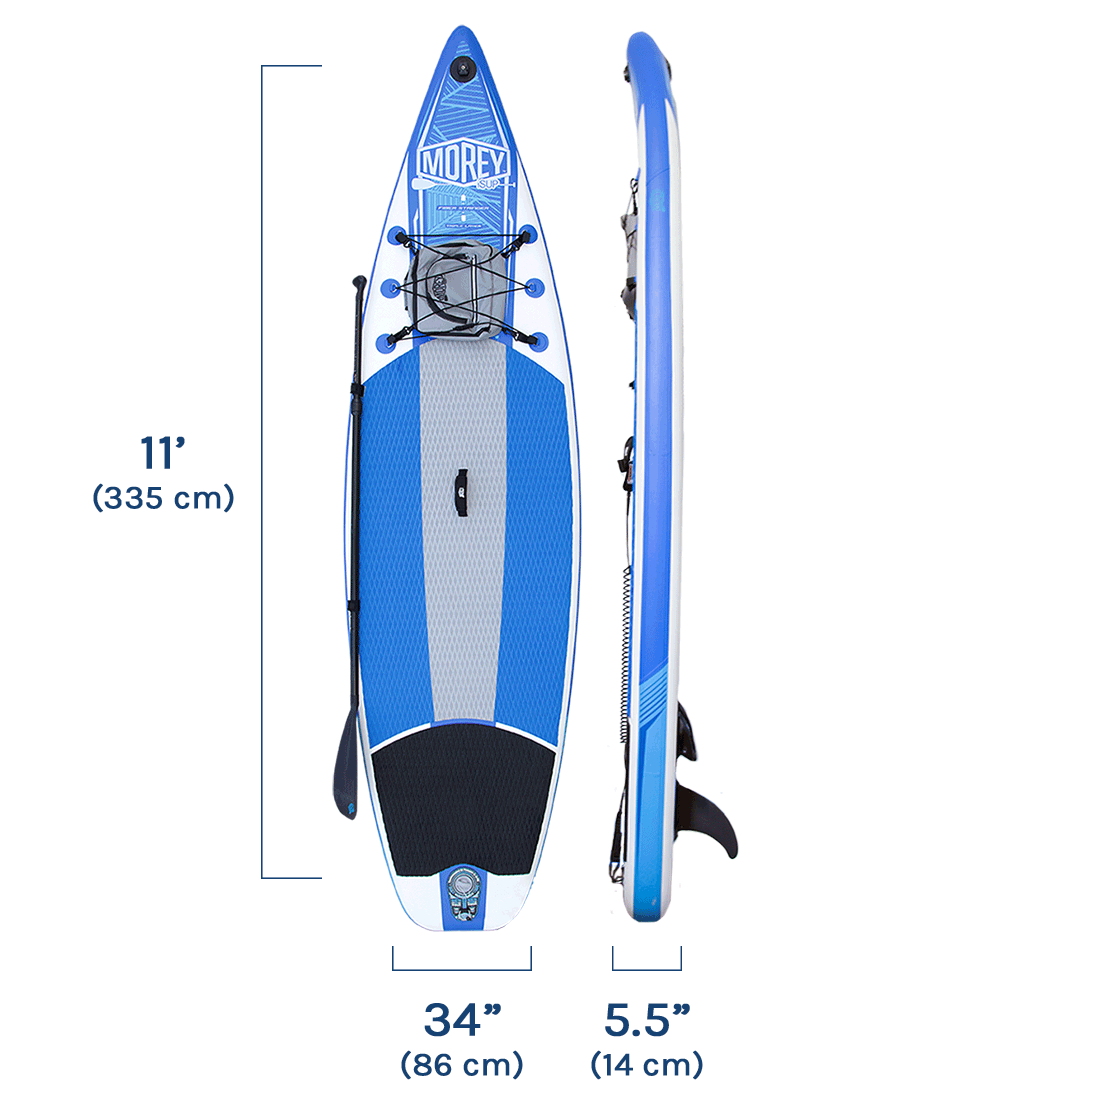 Morey SUP X-PLORE Product Specifications